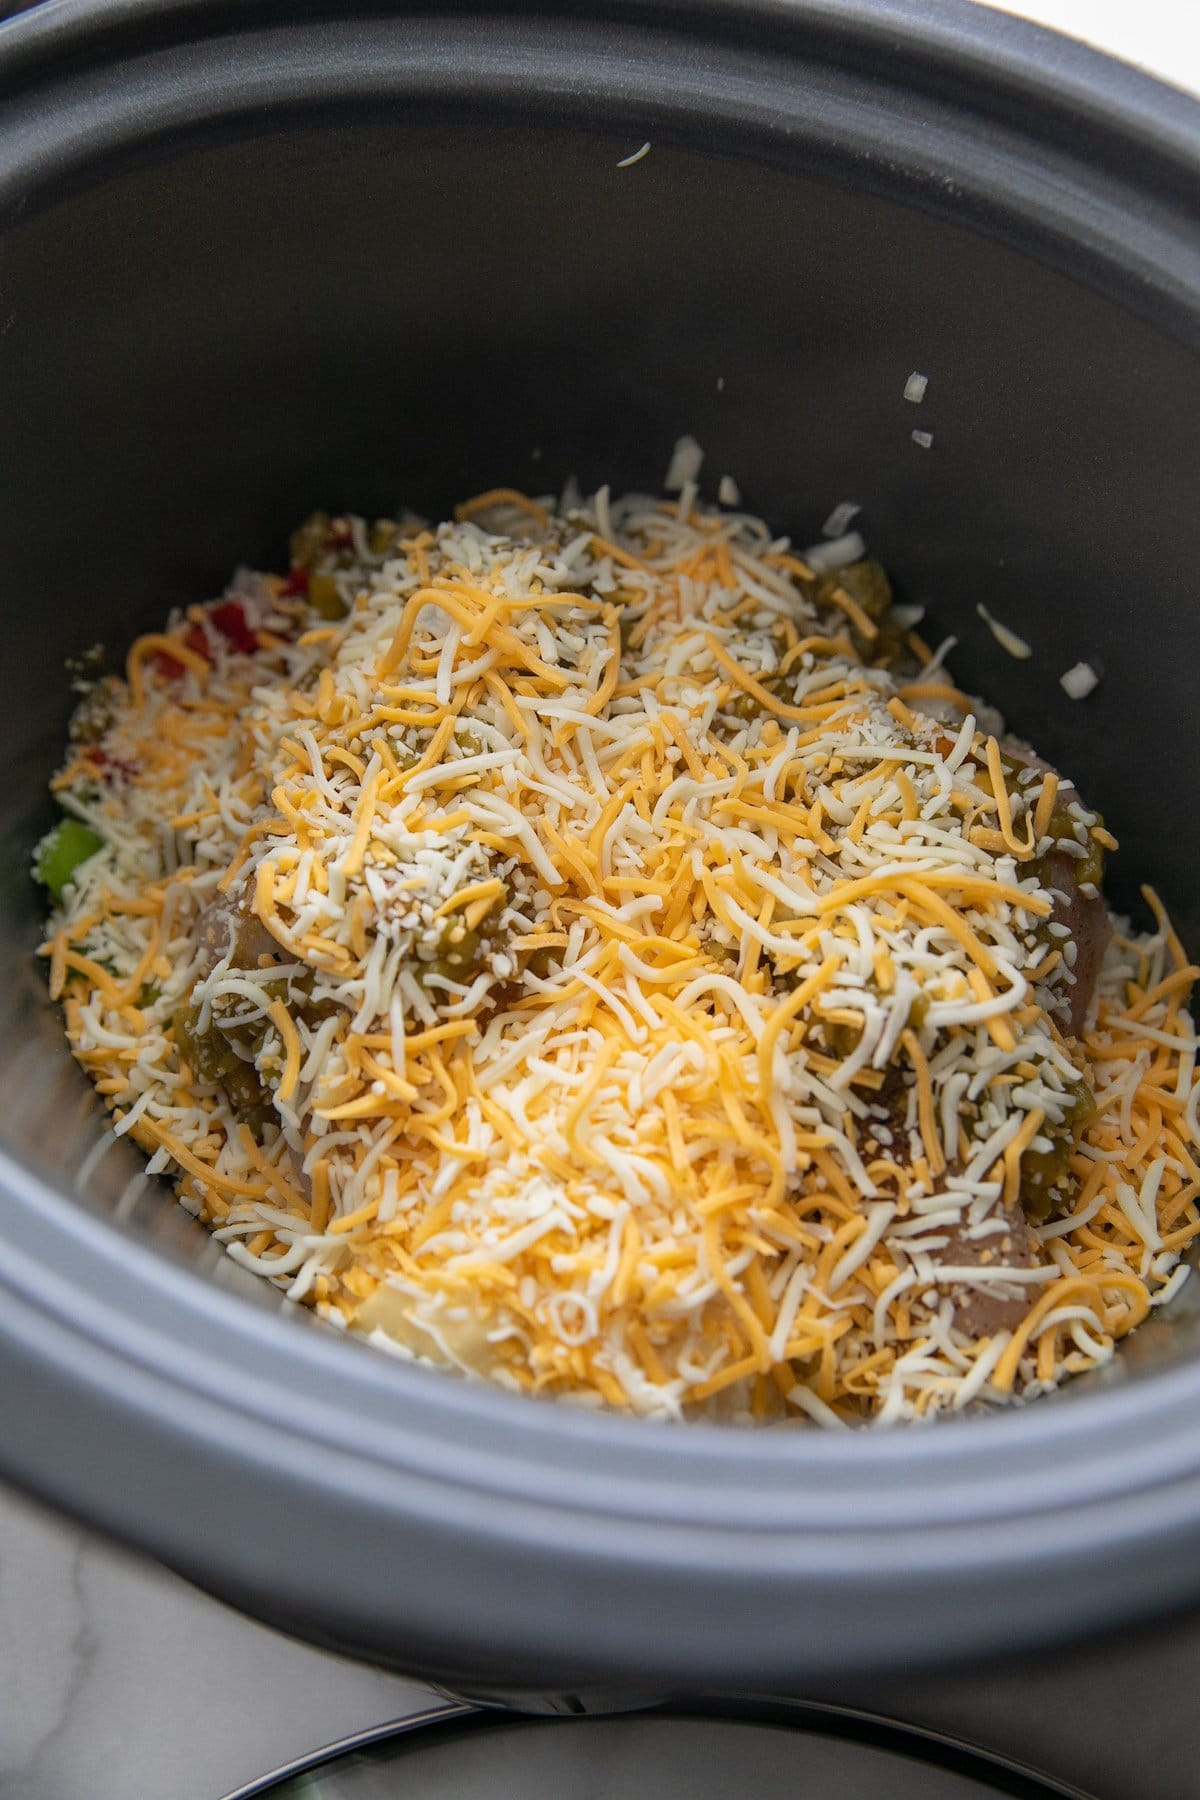 shredded cheese topping all other ingredients in a slow cooker